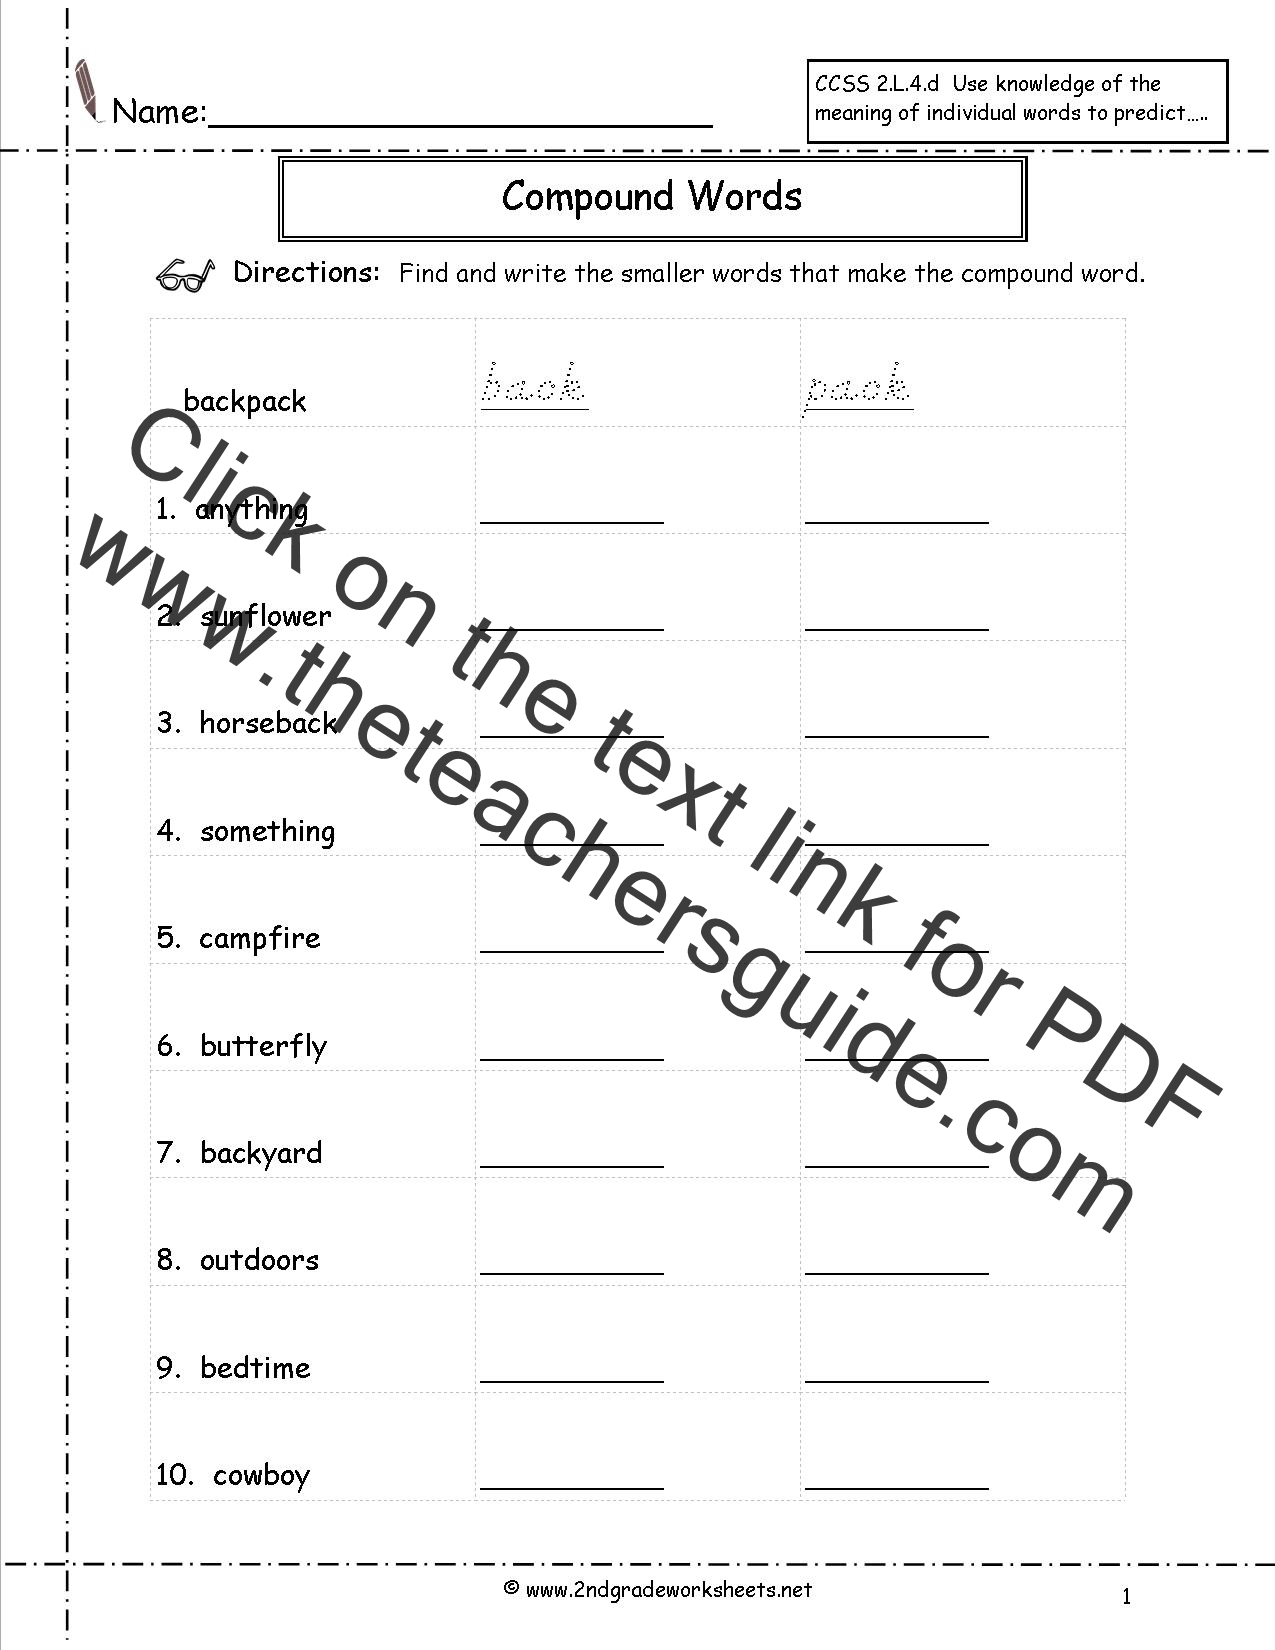 Worksheet Grammar Worksheets For 2nd Grade free languagegrammar worksheets and printouts compound words worksheets